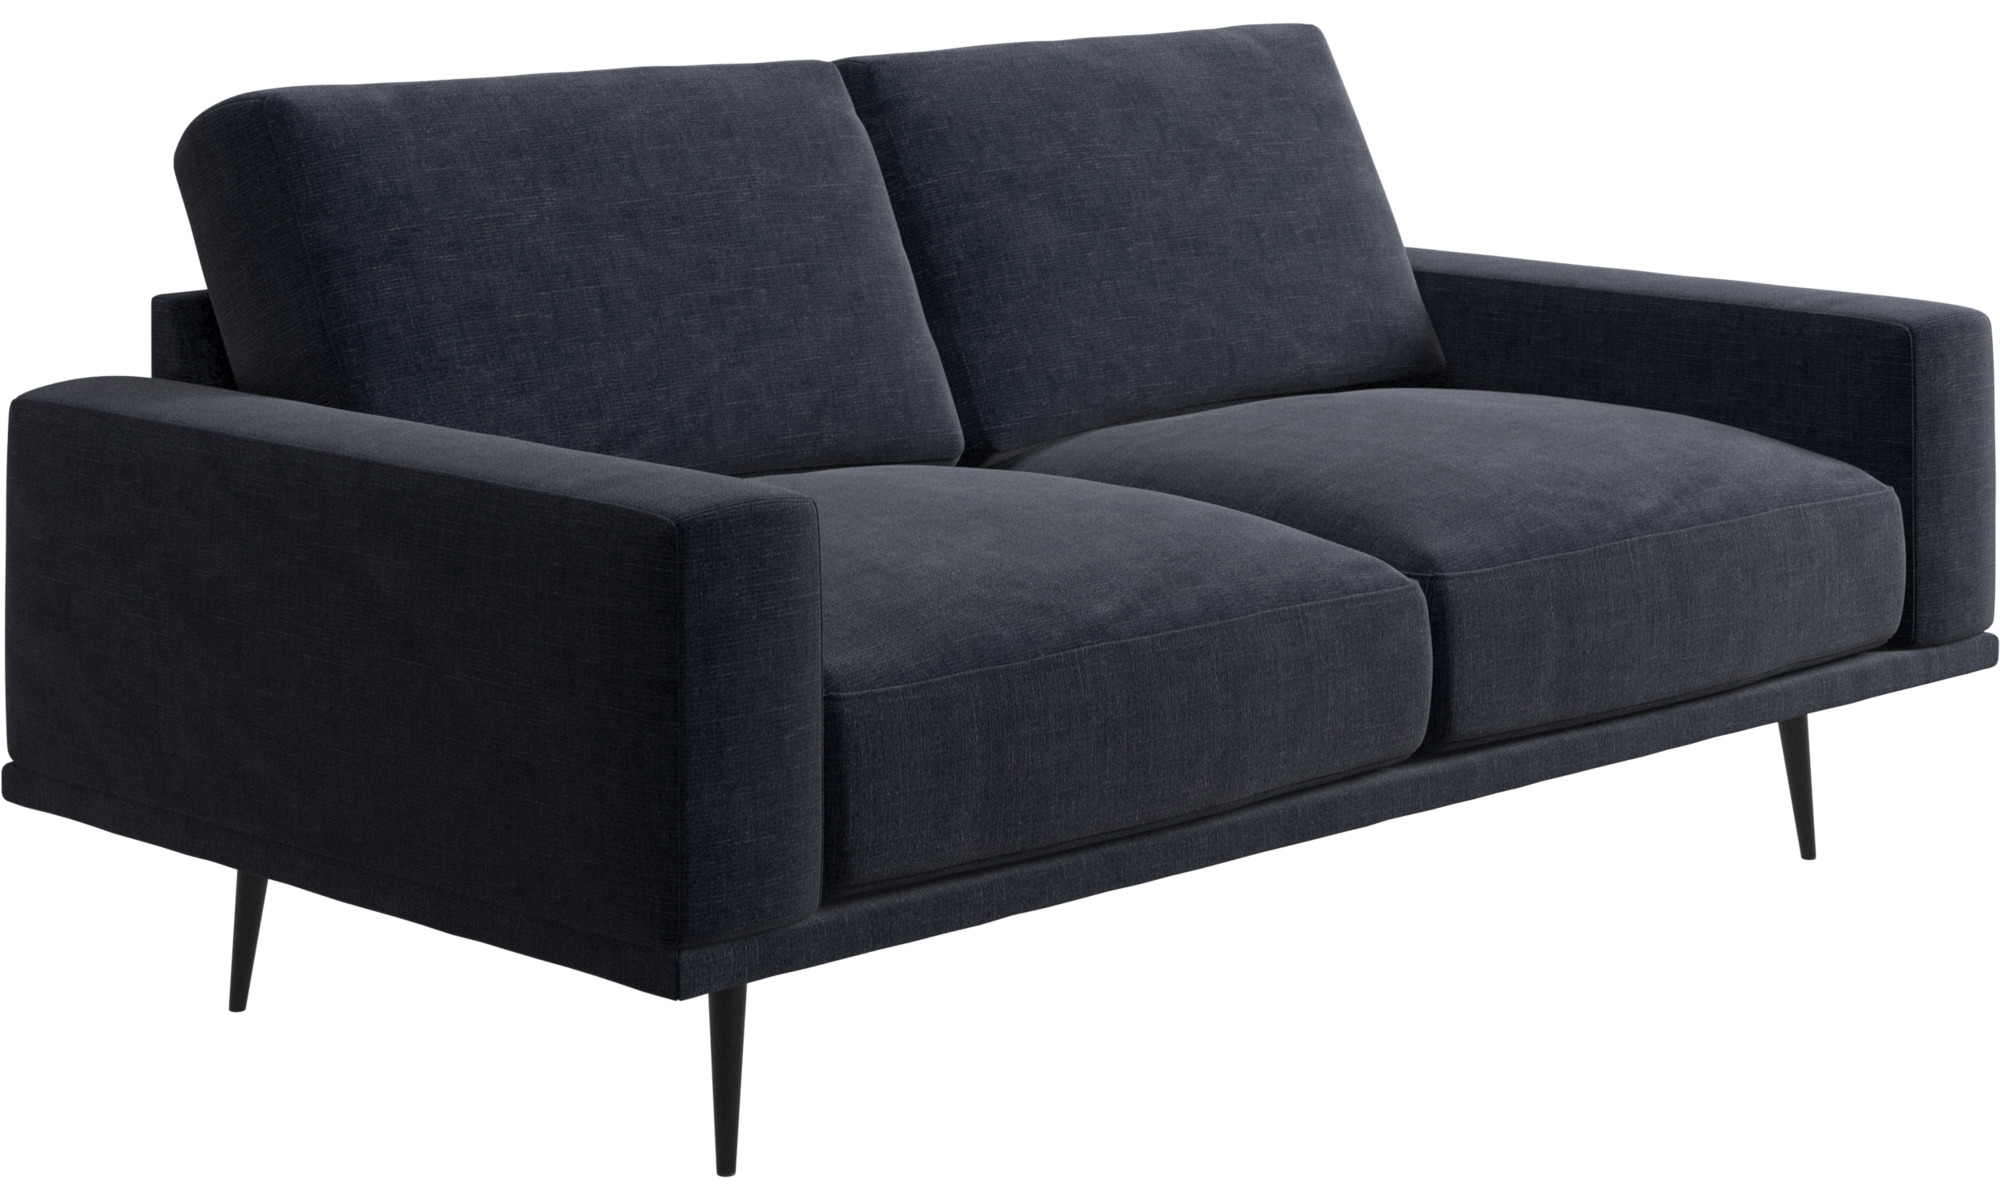 2 sitzer sofas carlton sofa boconcept. Black Bedroom Furniture Sets. Home Design Ideas